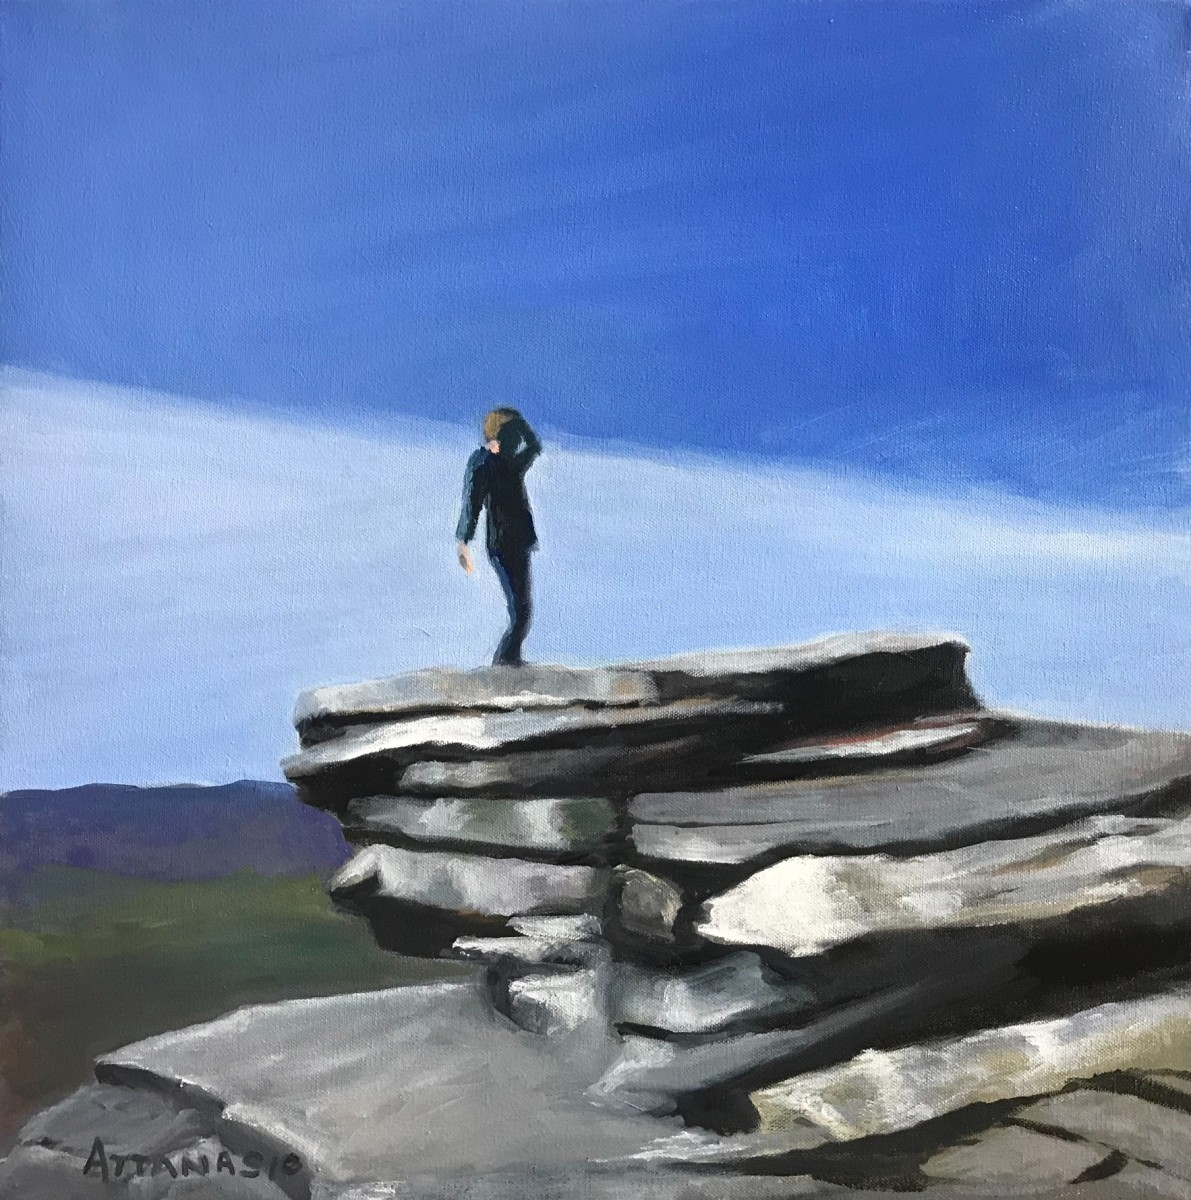 The Lookout by John Attanasio